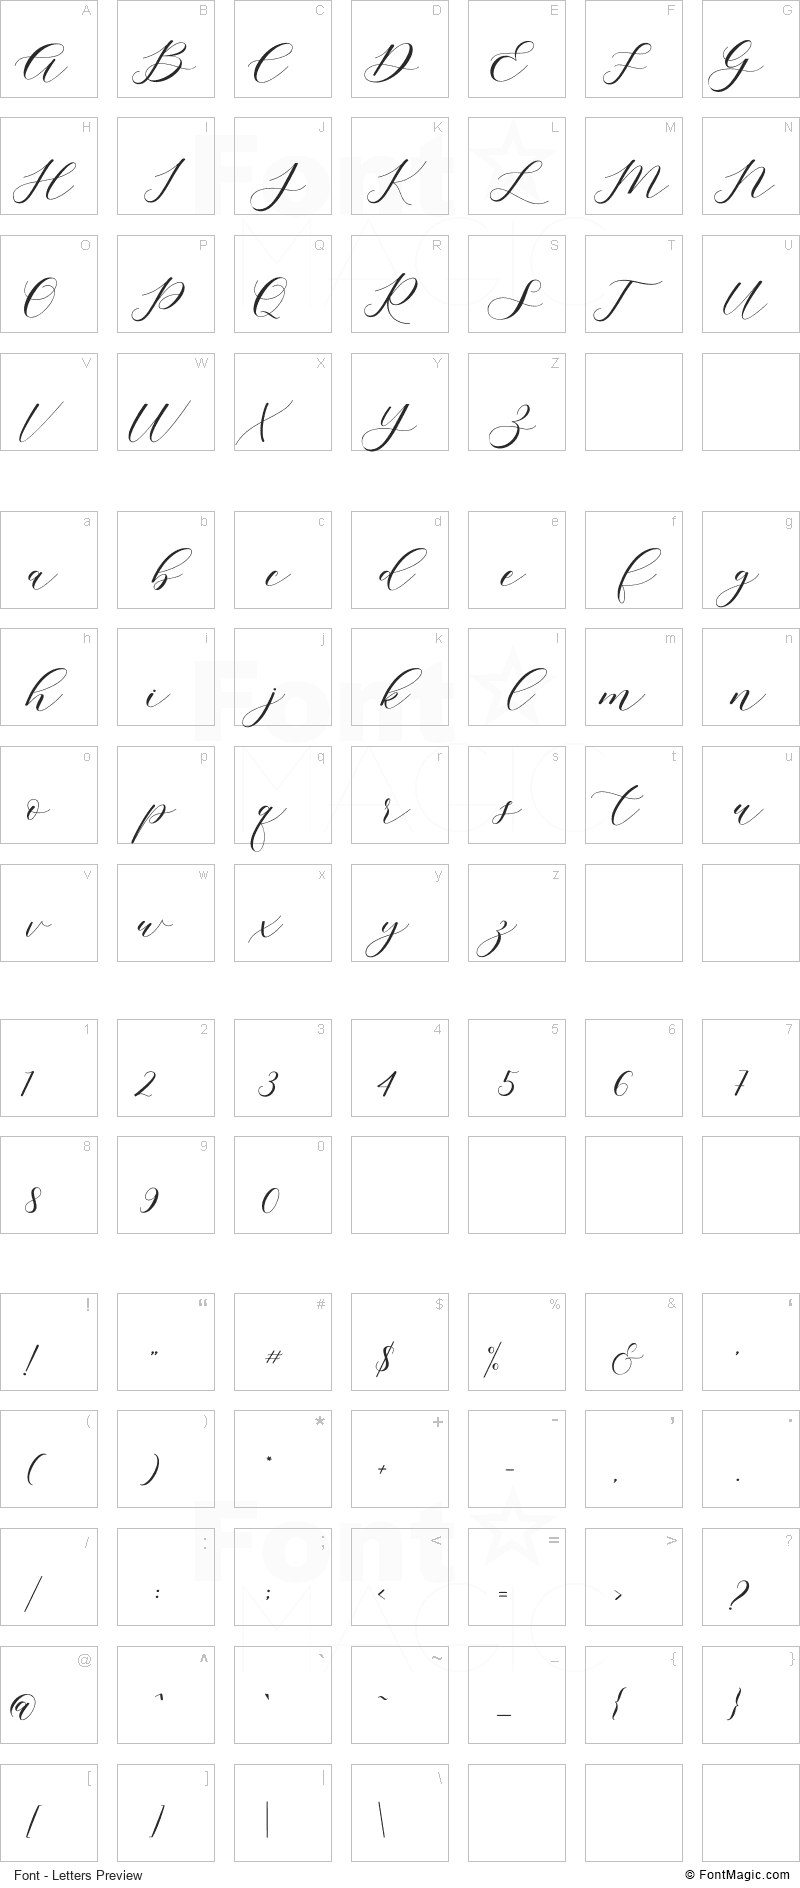 Sigtia Font - All Latters Preview Chart